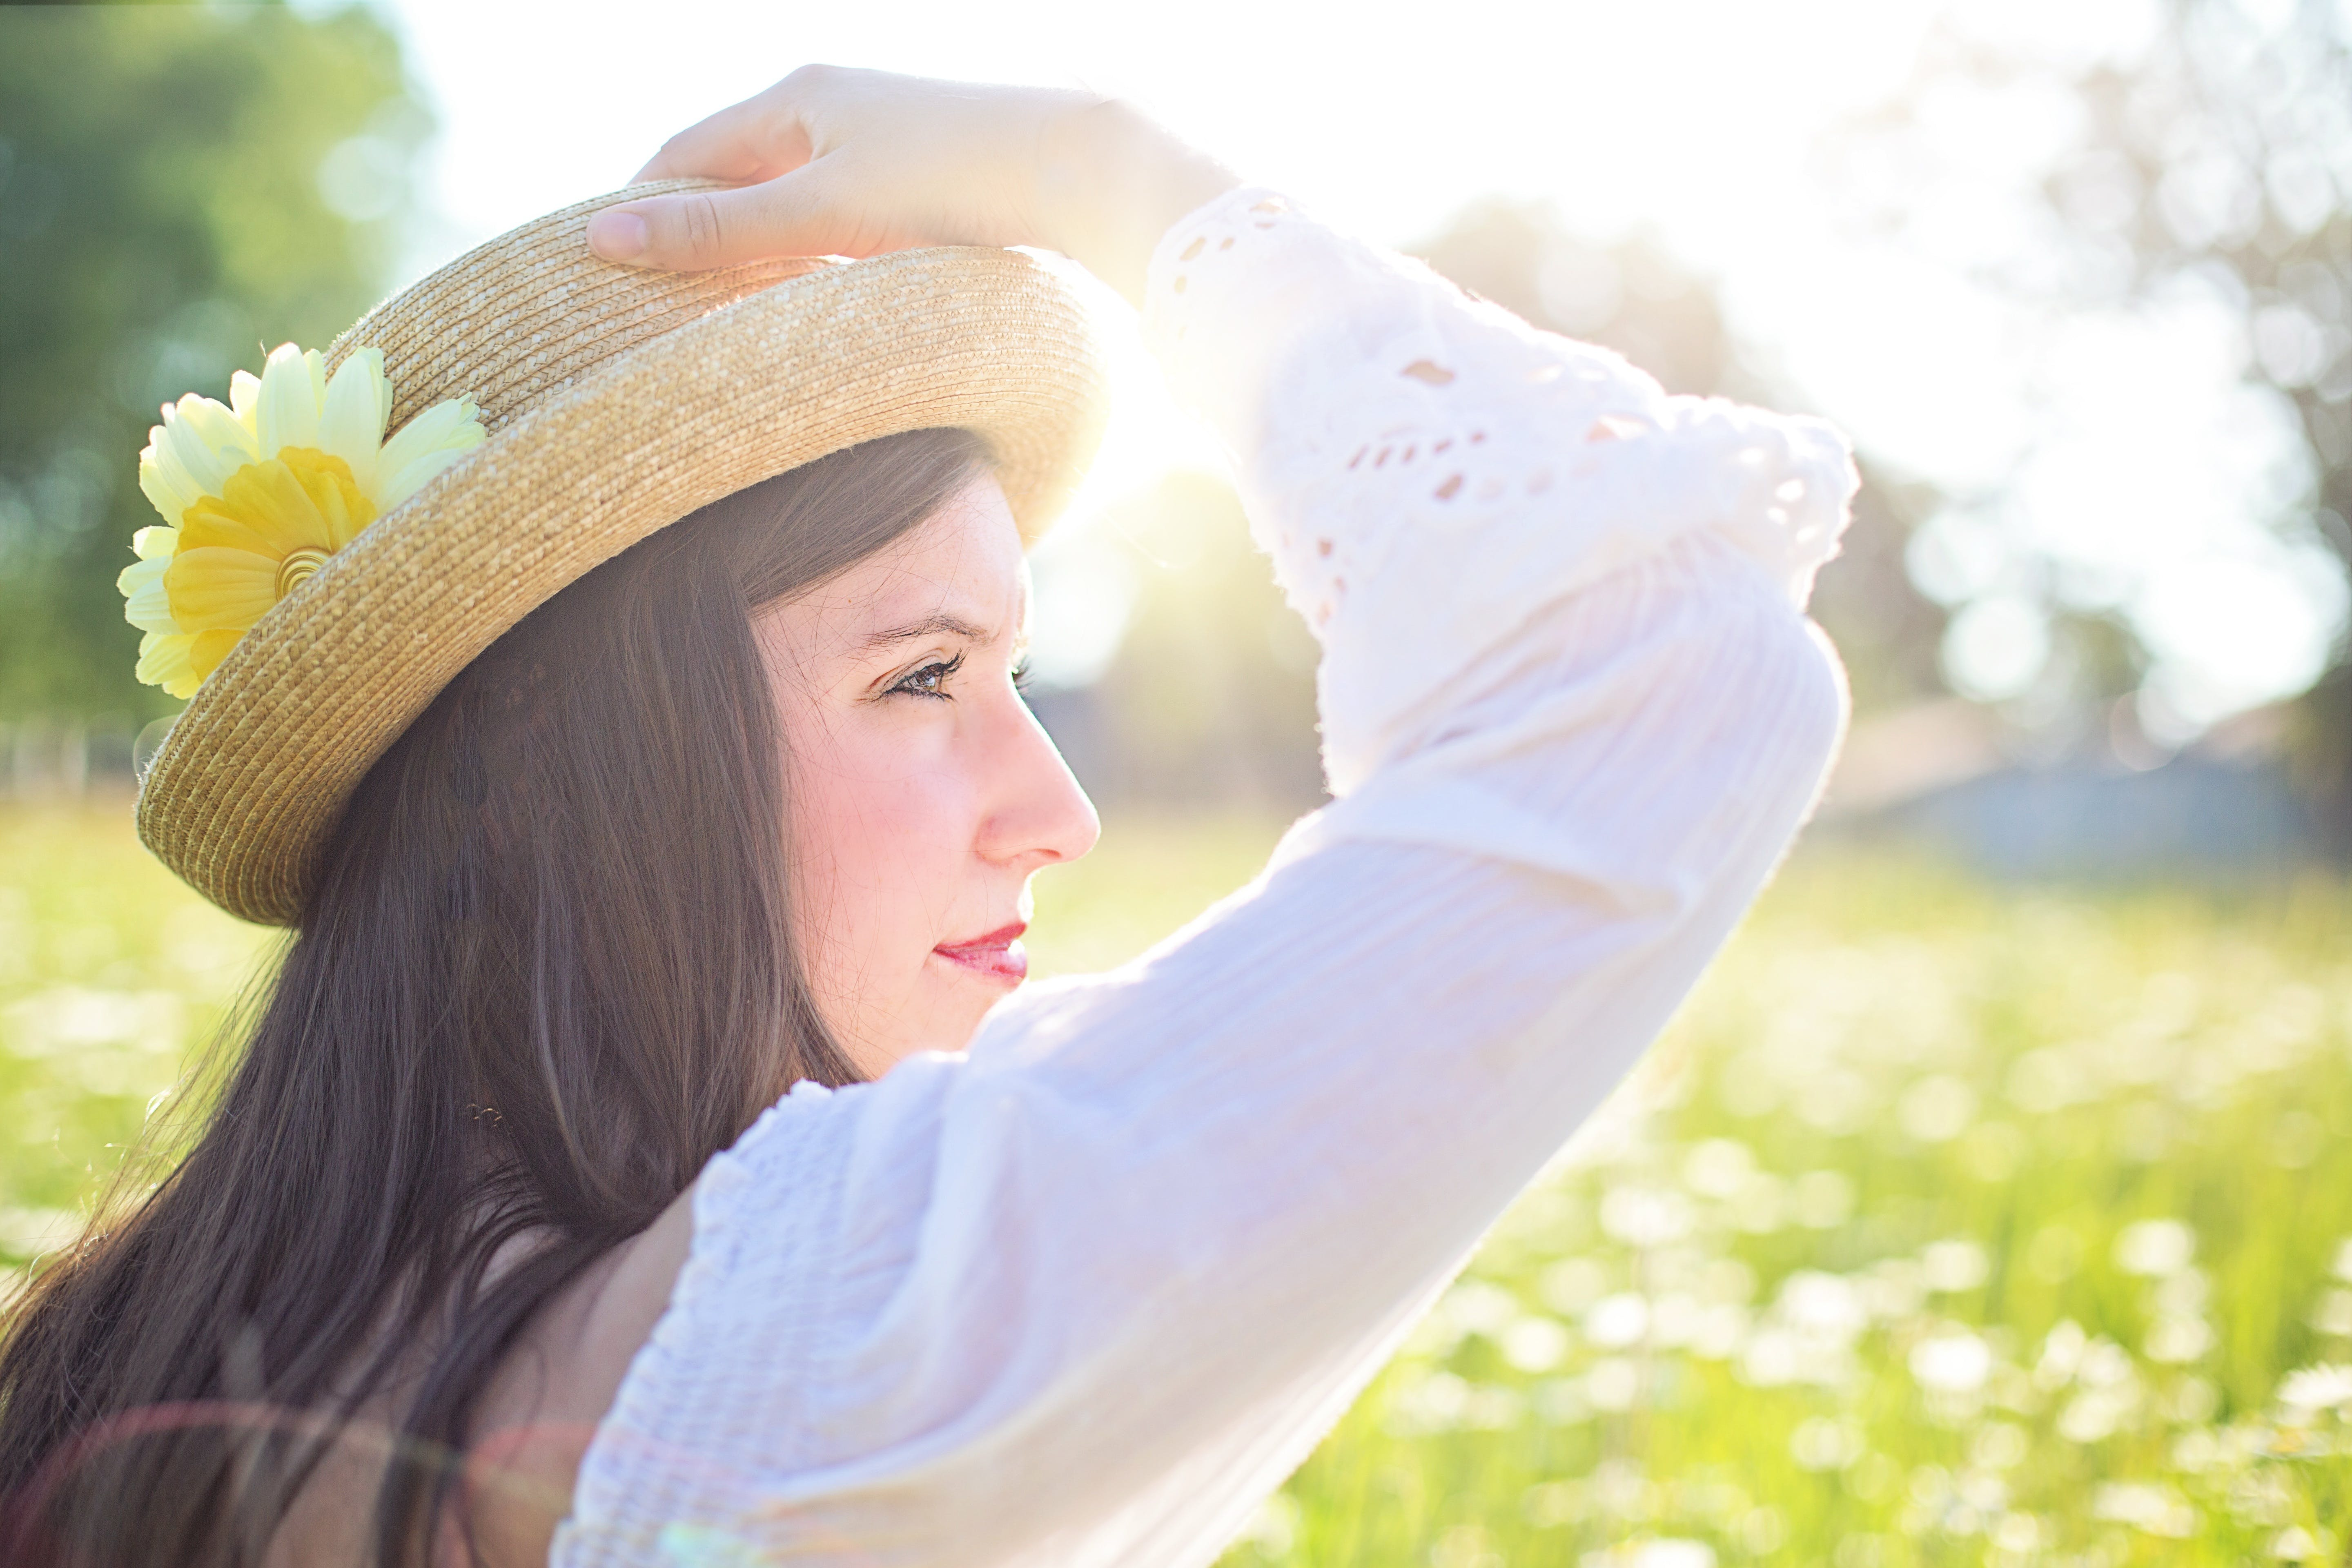 Woman in White Long Sleeve Shirt Wearing a Straw Hat during Daytime at Flower Field